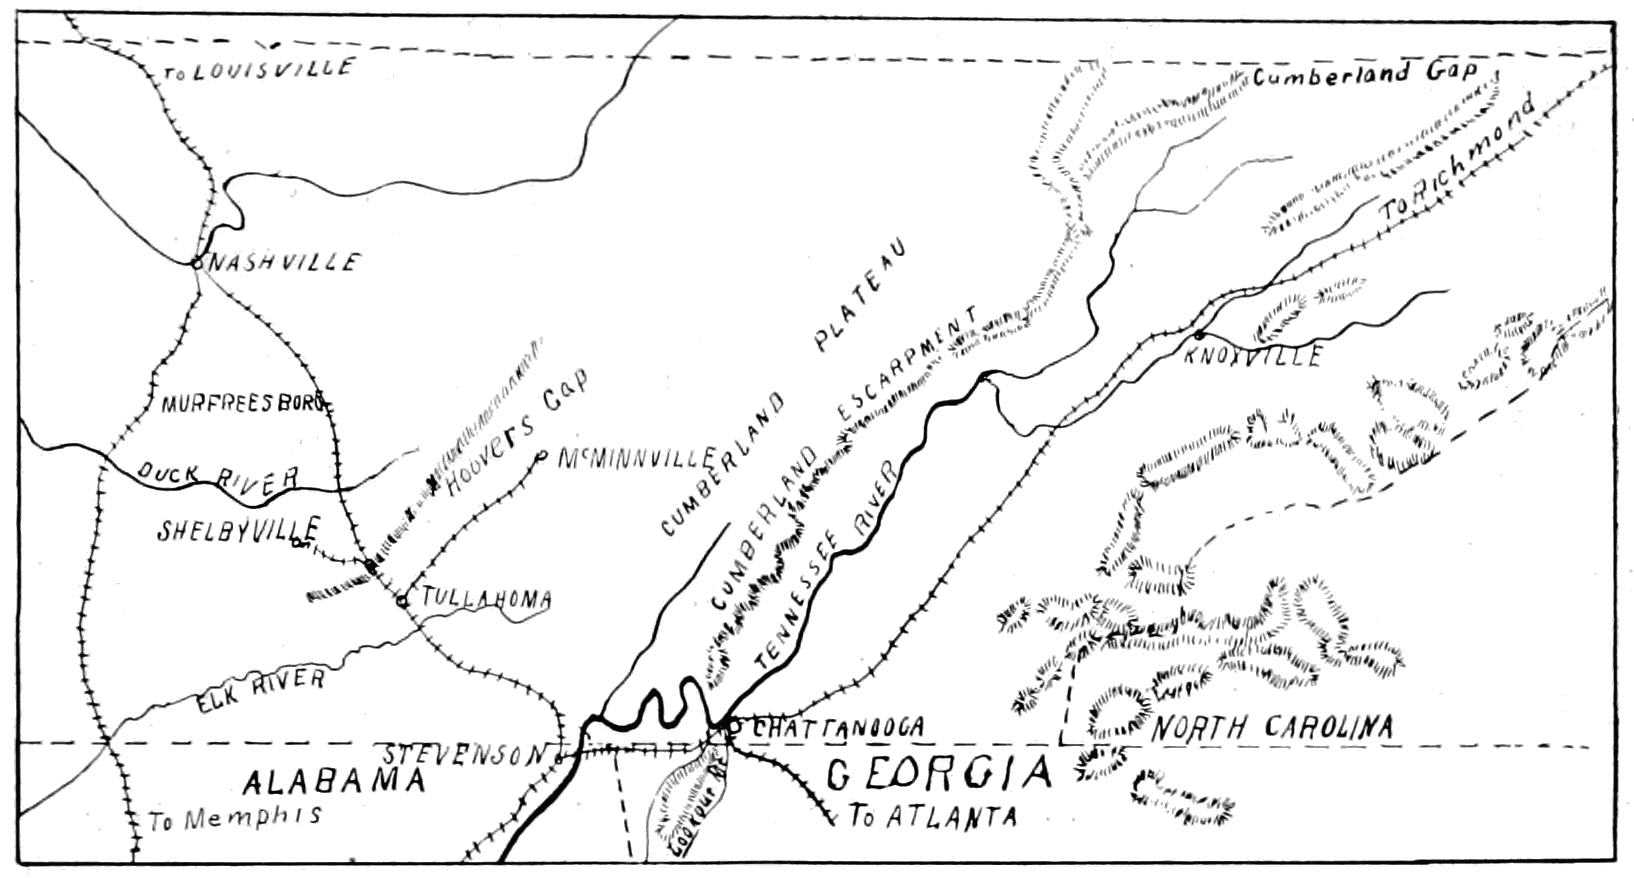 PSM V65 D153 Outline map of the chattanooga campaign region.png